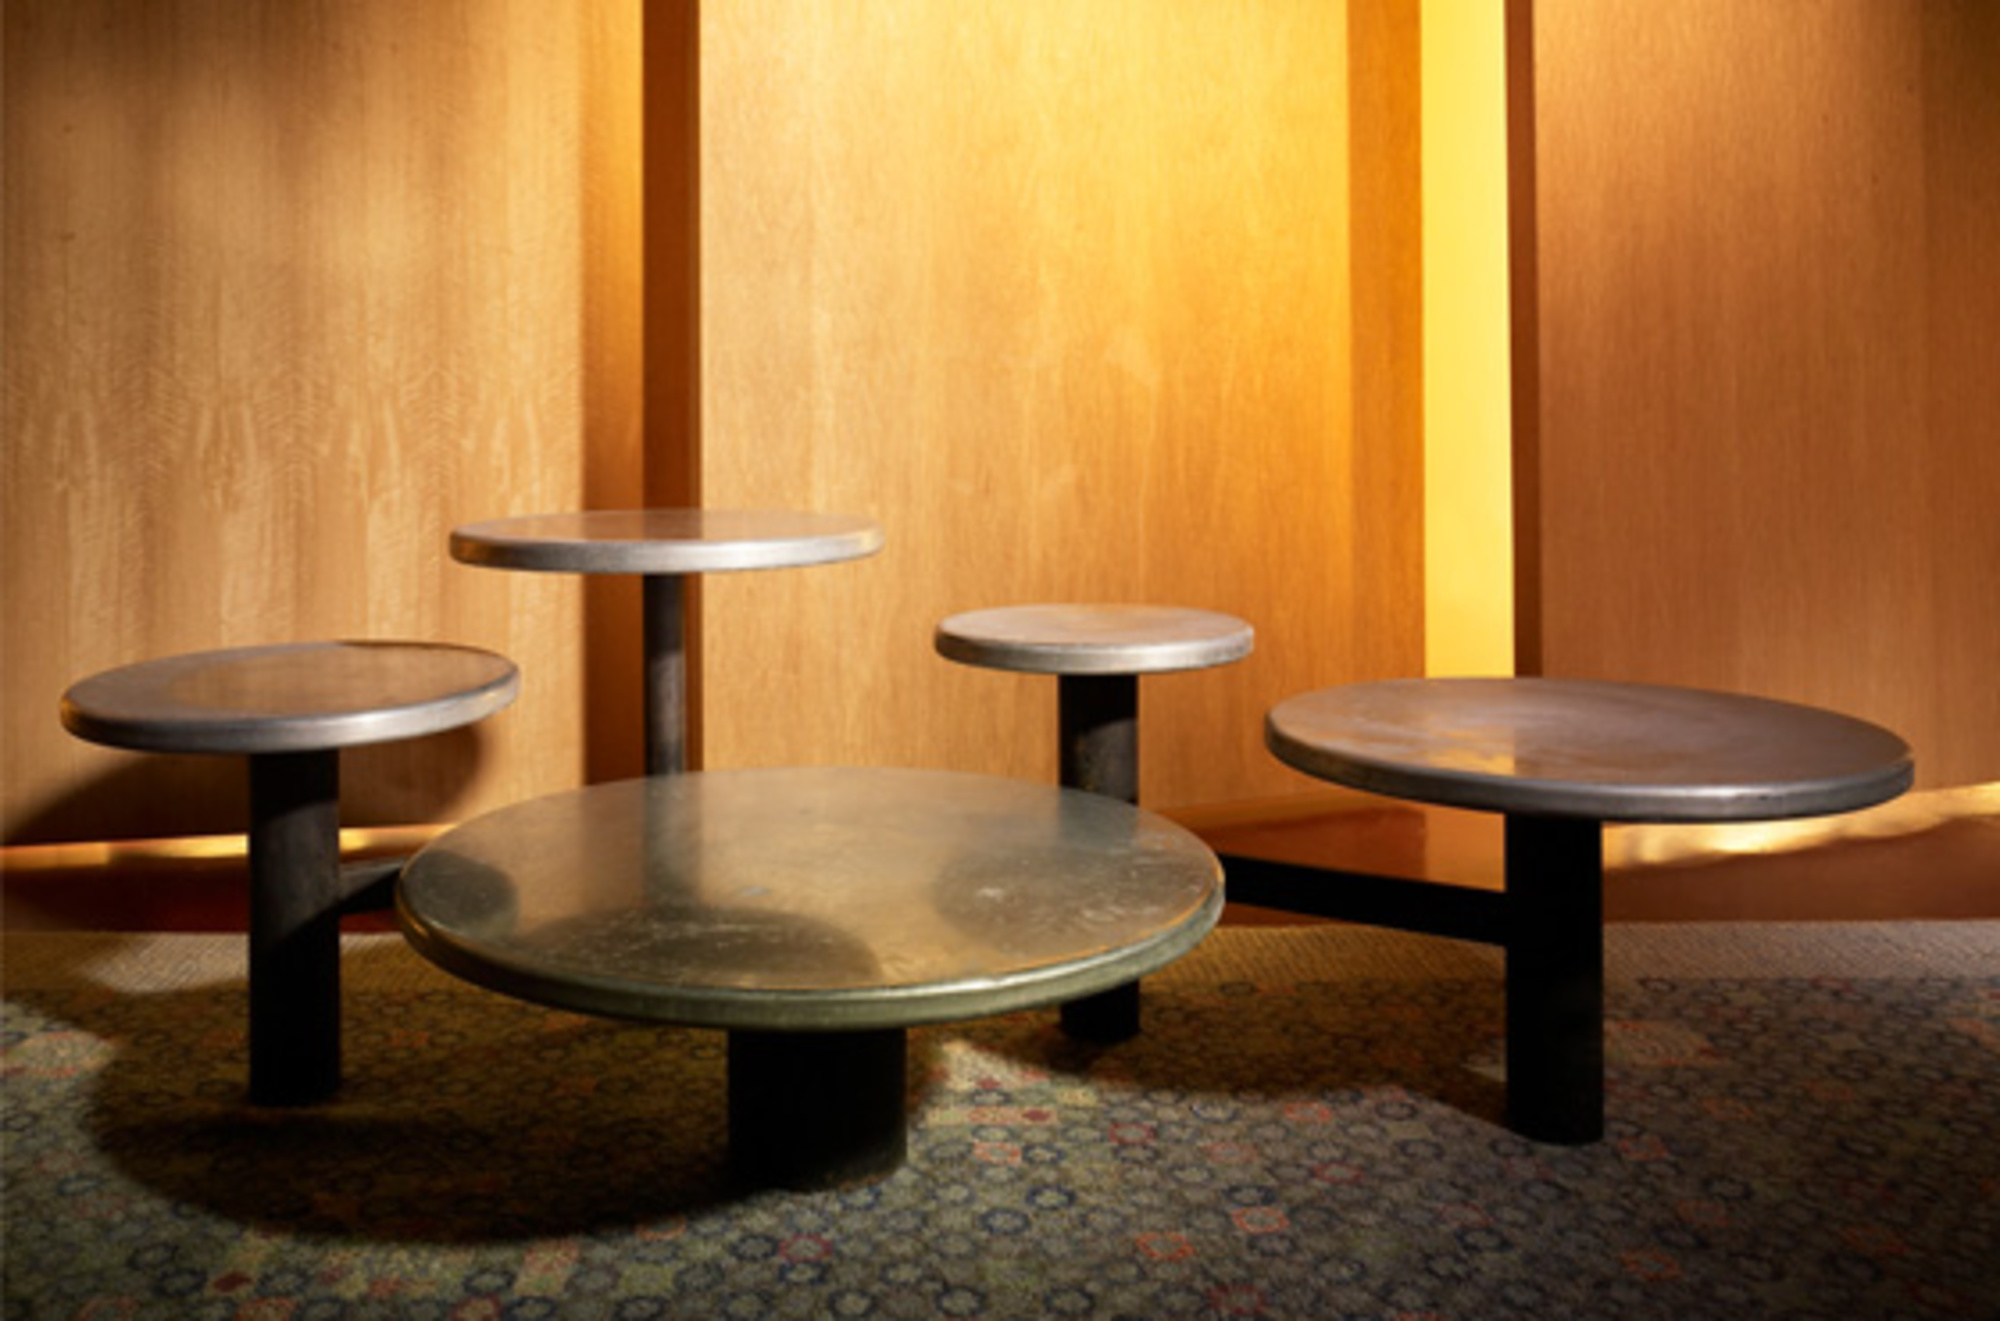 TOM DIXON Coffee Table From The Yorkshire Dance Centre Leeds - Tom dixon coffee table